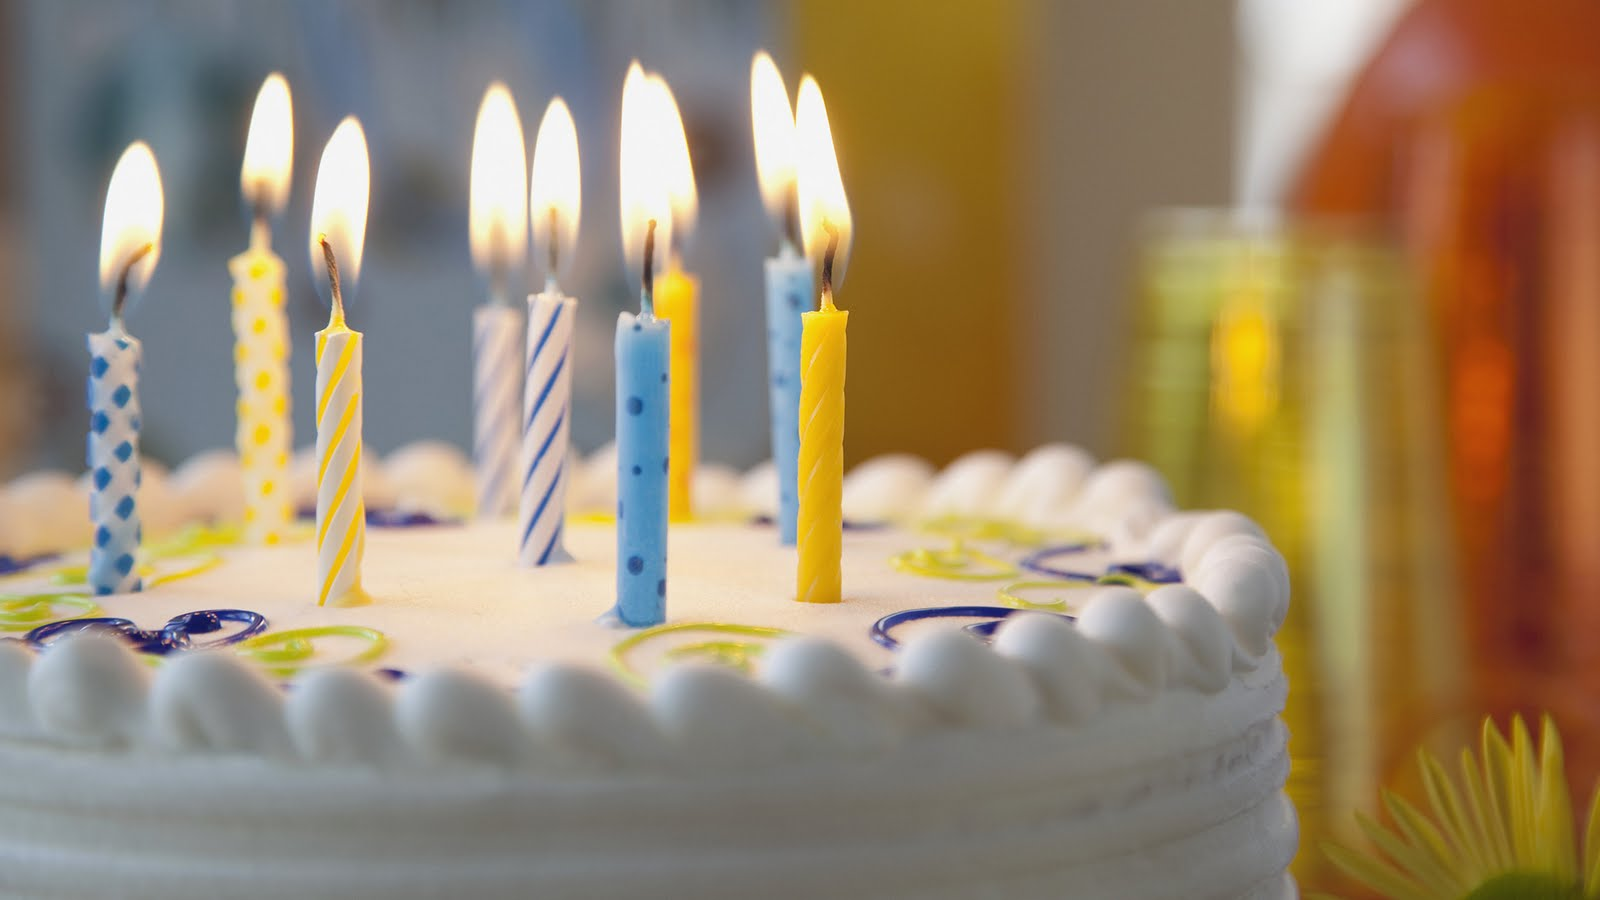 birthday images hd wallpaper ; happy-birthday-to-you-1080p-hd-wallpaper